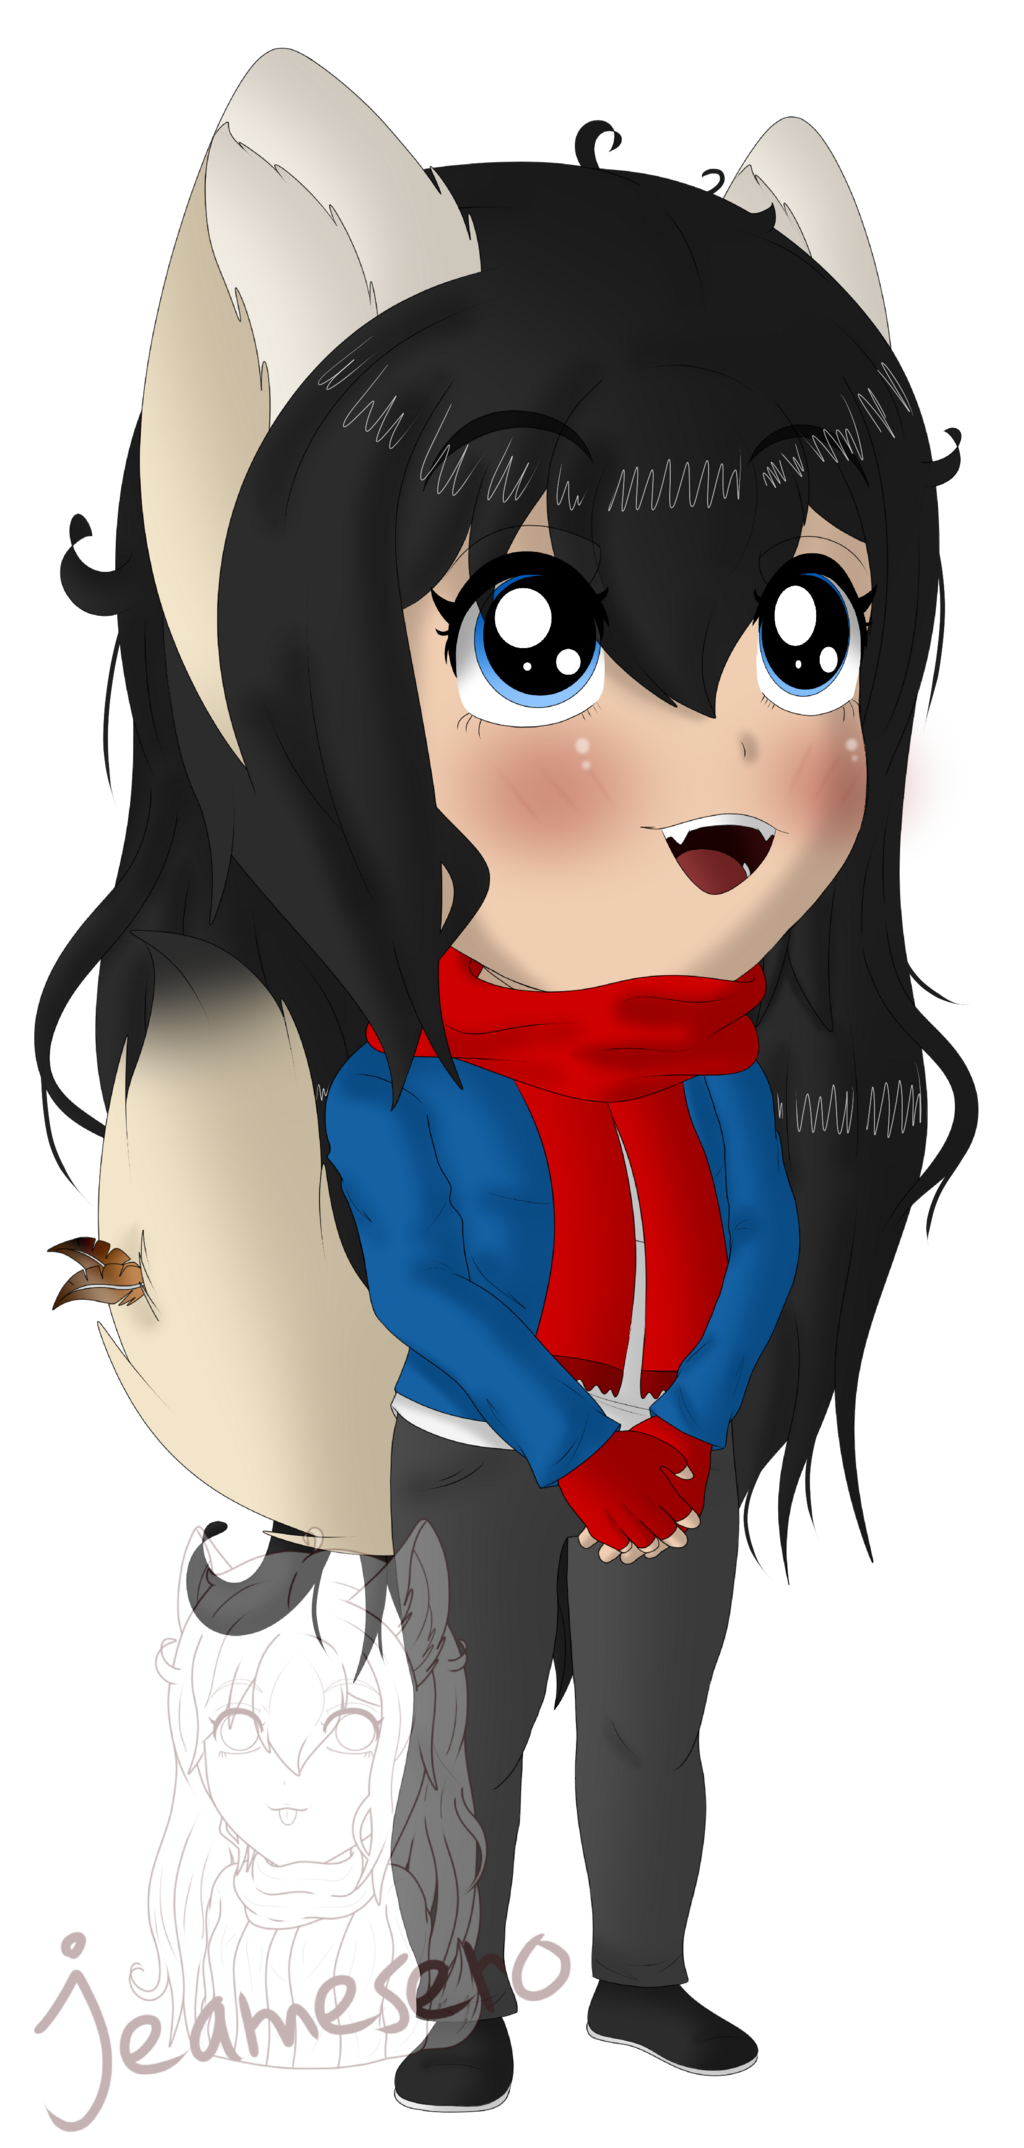 Chibi colored and shaded sketch 2.0